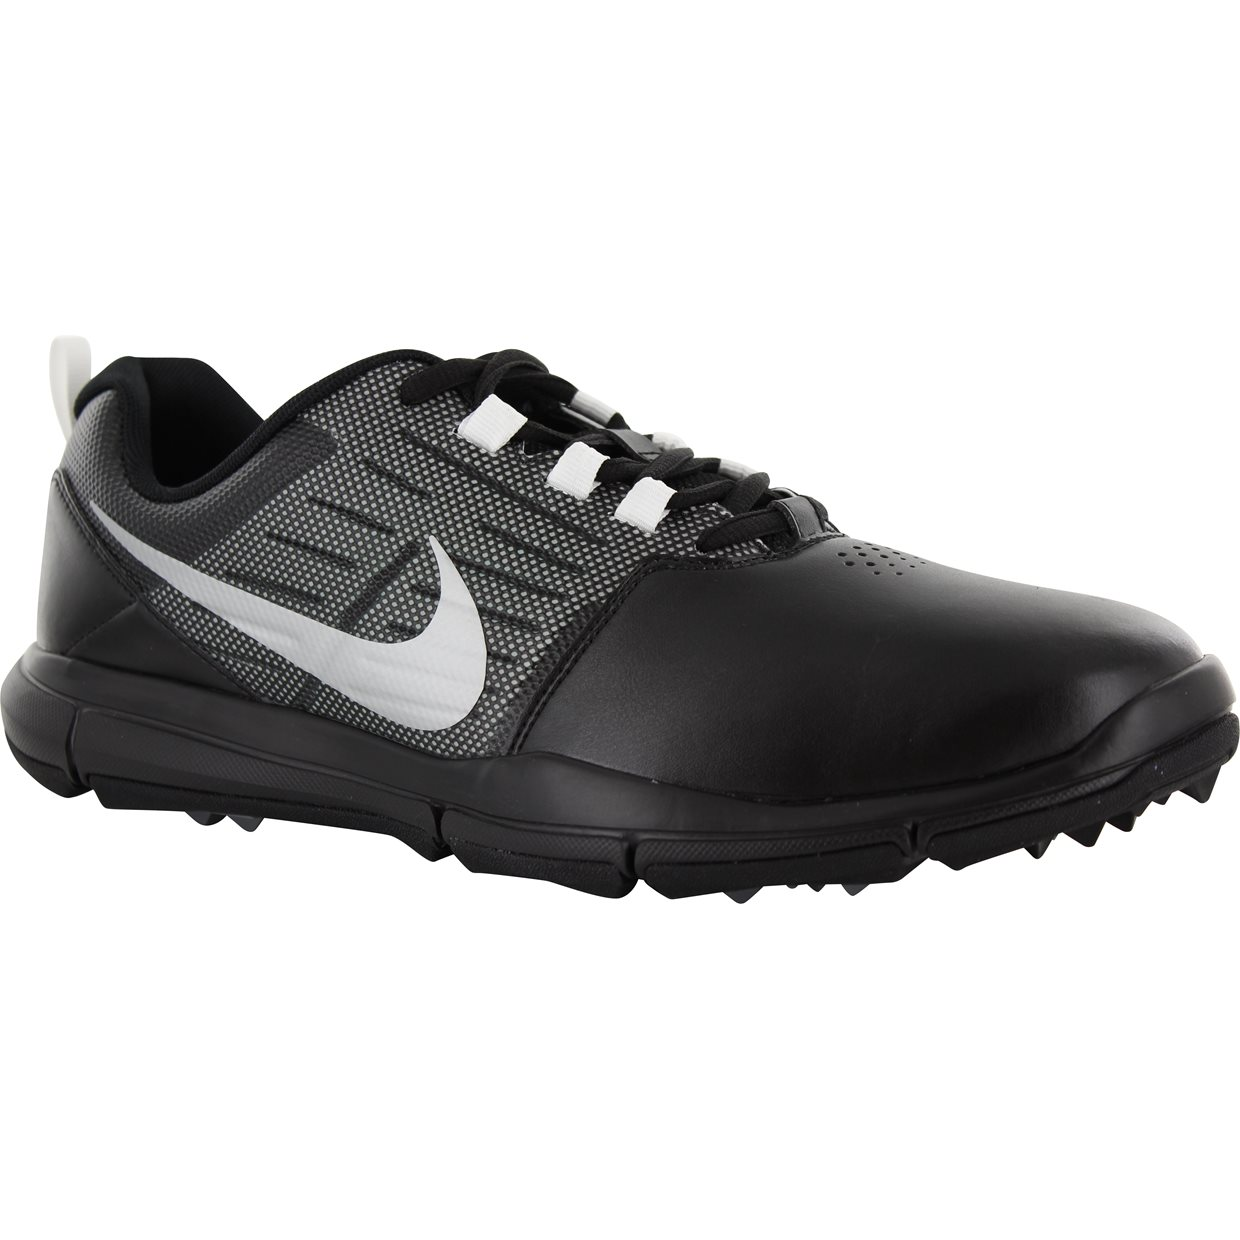 Nike Explorer SL Spikeless Golf Shoes - Black Wide Width